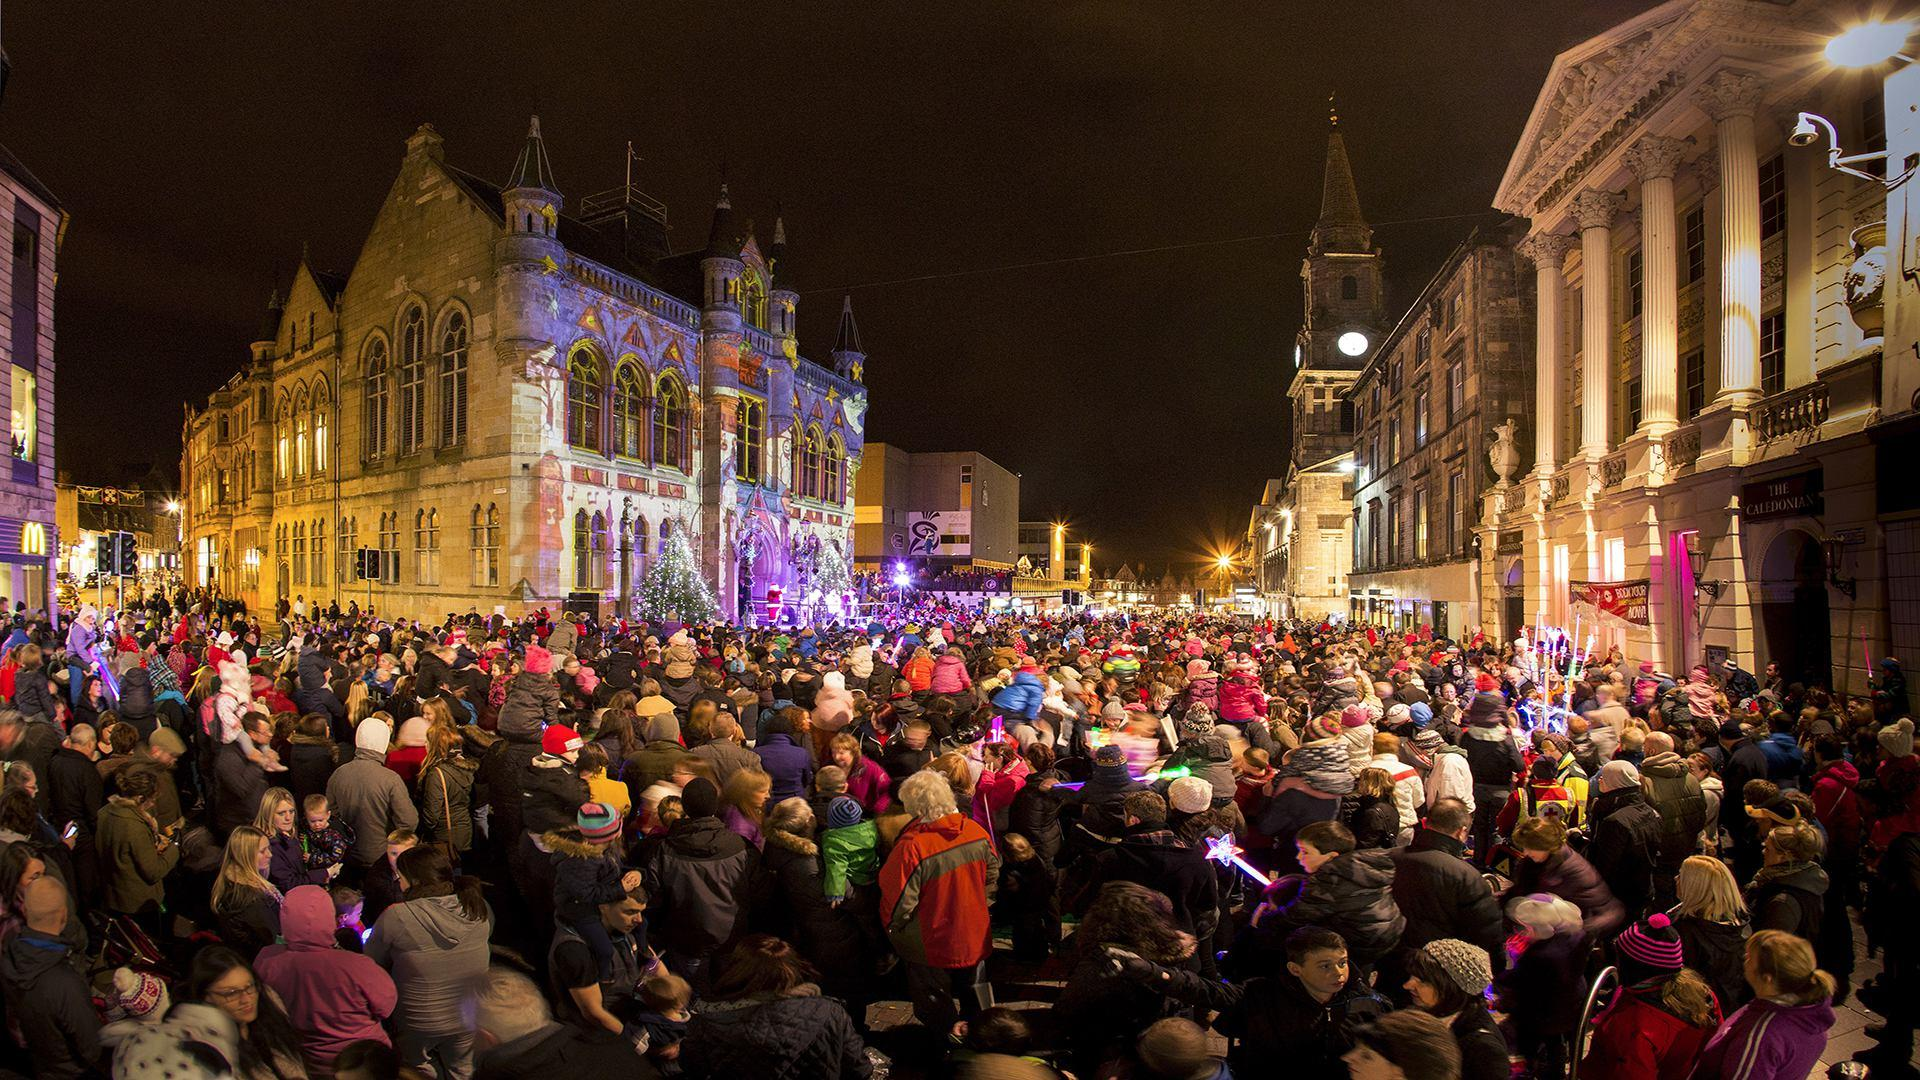 Inverness Christmas Parade 2020 Christmas in Inverness   Markets & Events | VisitScotland